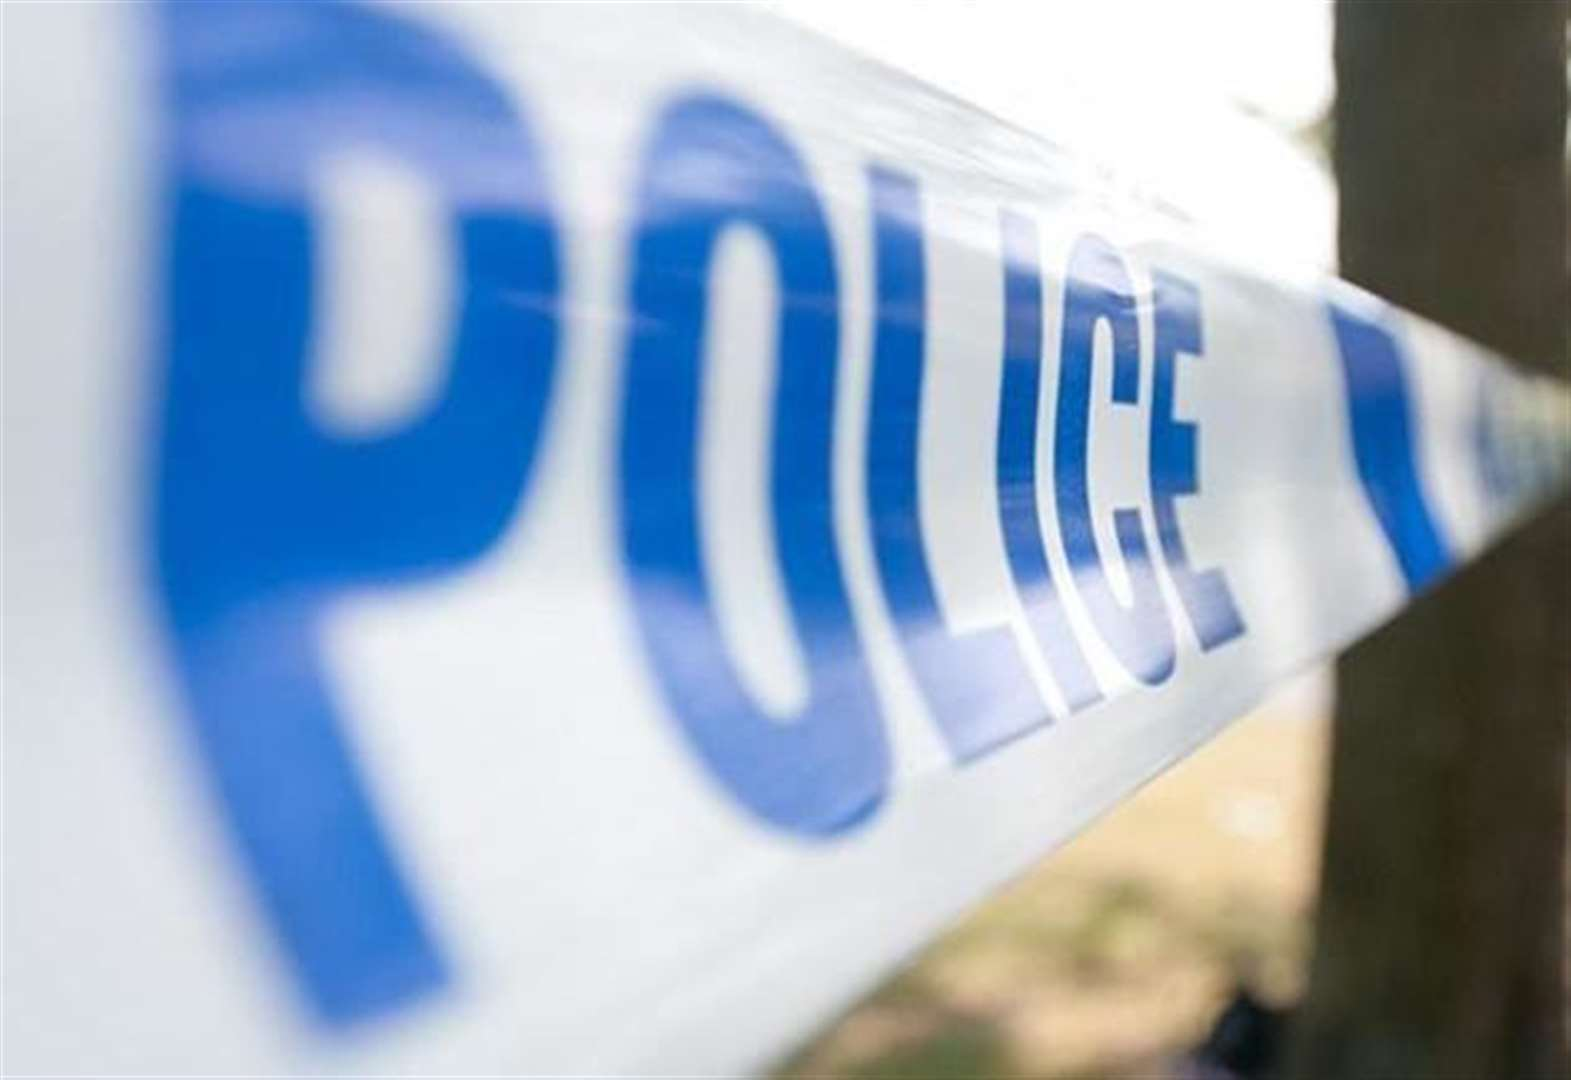 Cash, bank cards and documents taken in Thetford burglary